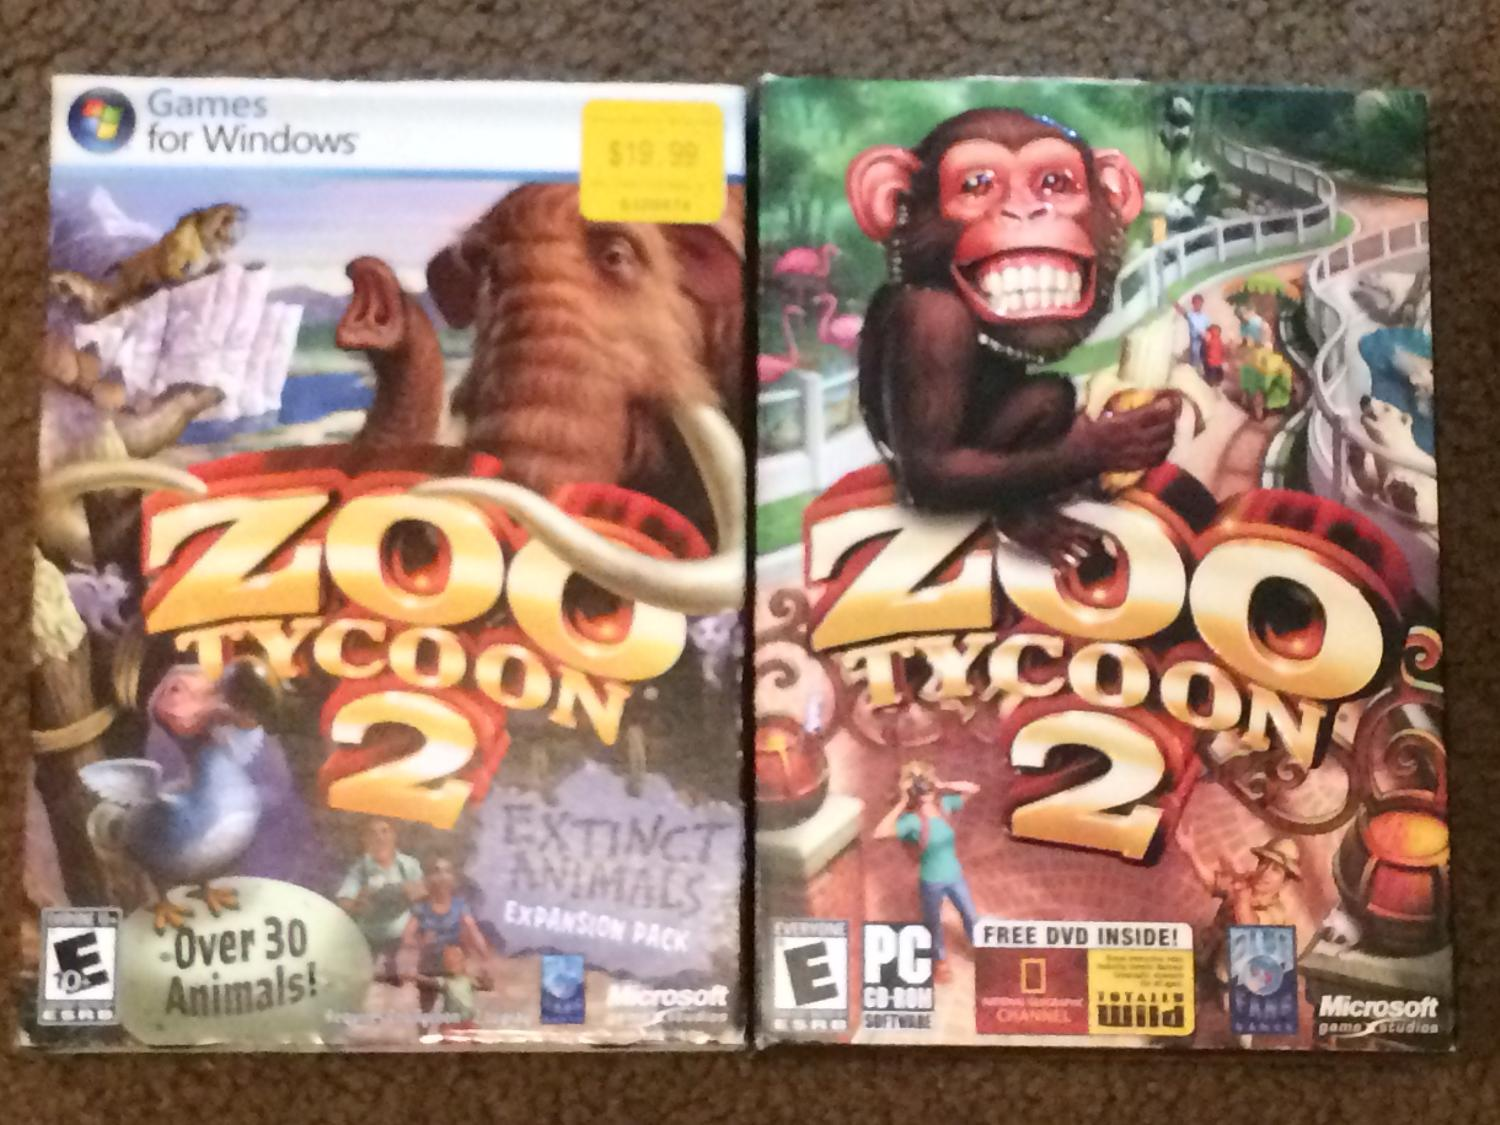 Zoo Tycoon 2 & Zoo Tycoon 2: Extinct Species expansion (PC)